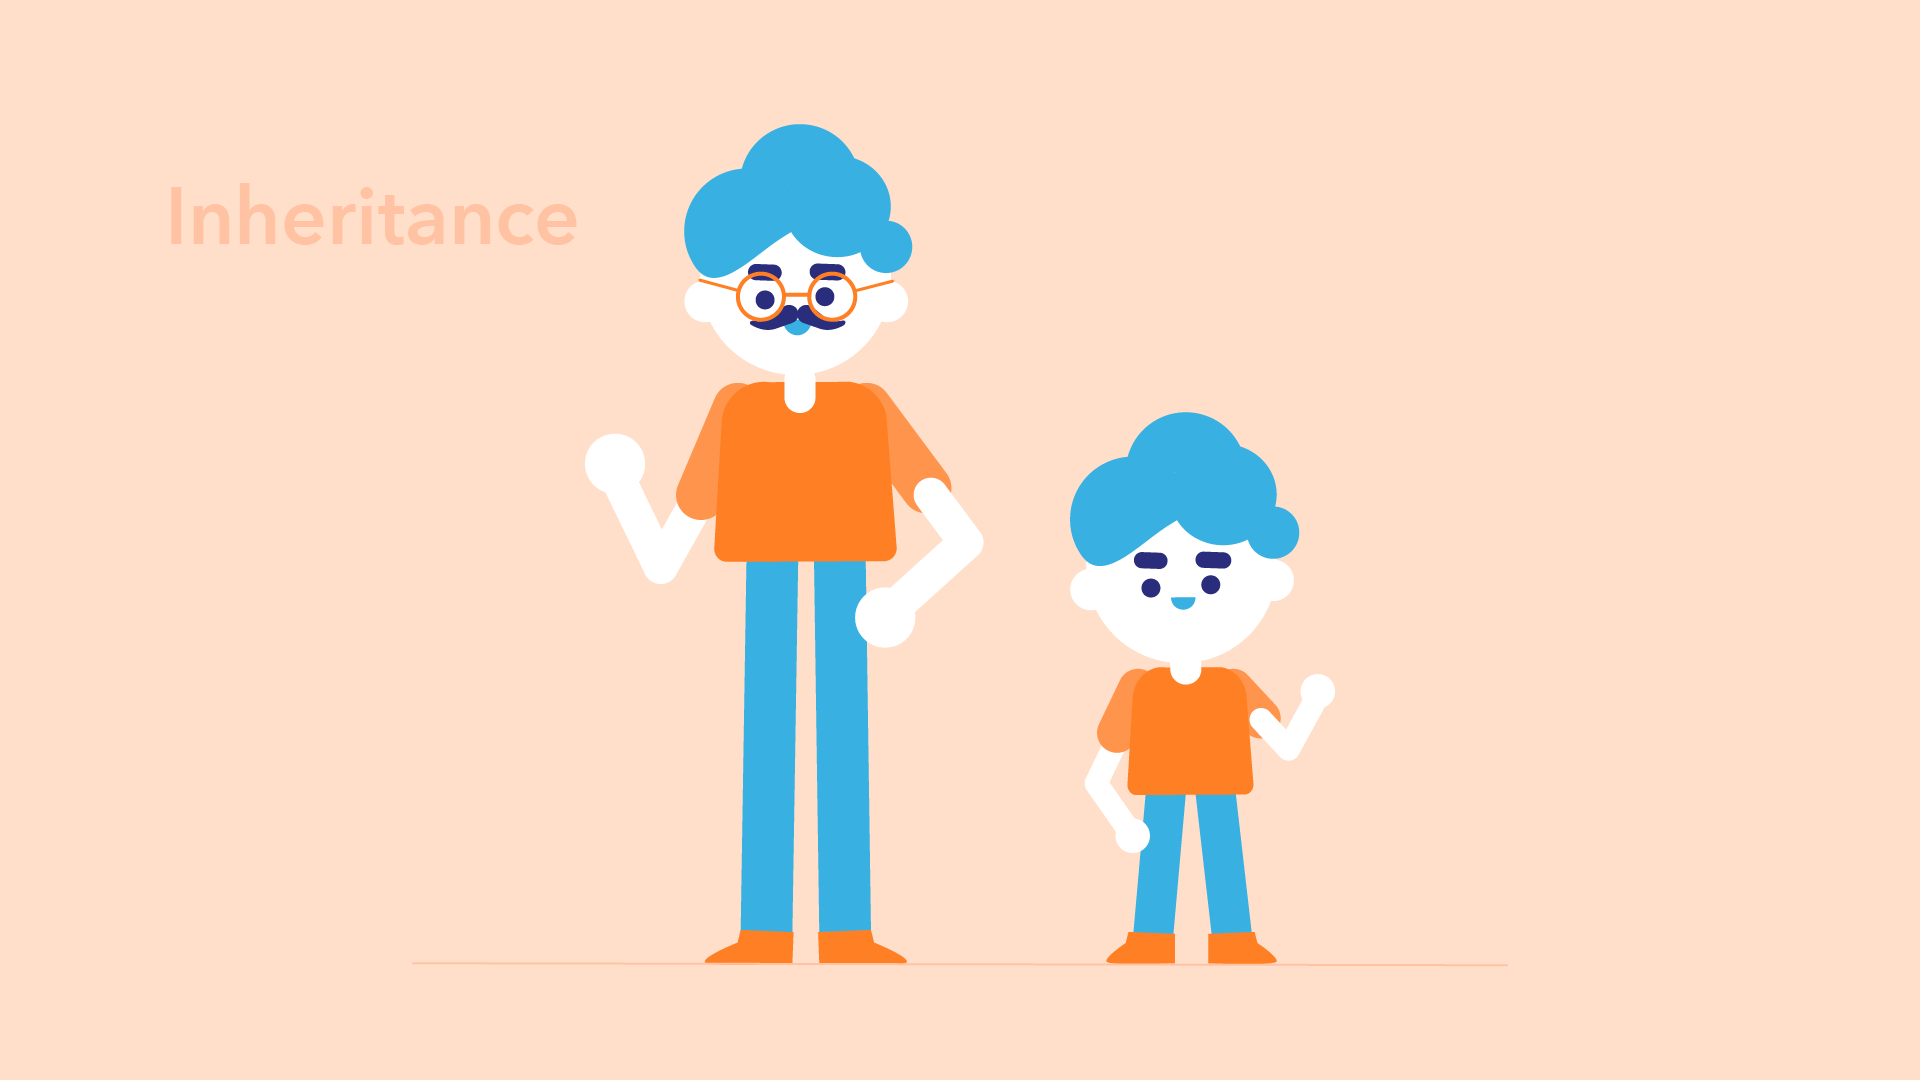 father and son with similar physical appearance